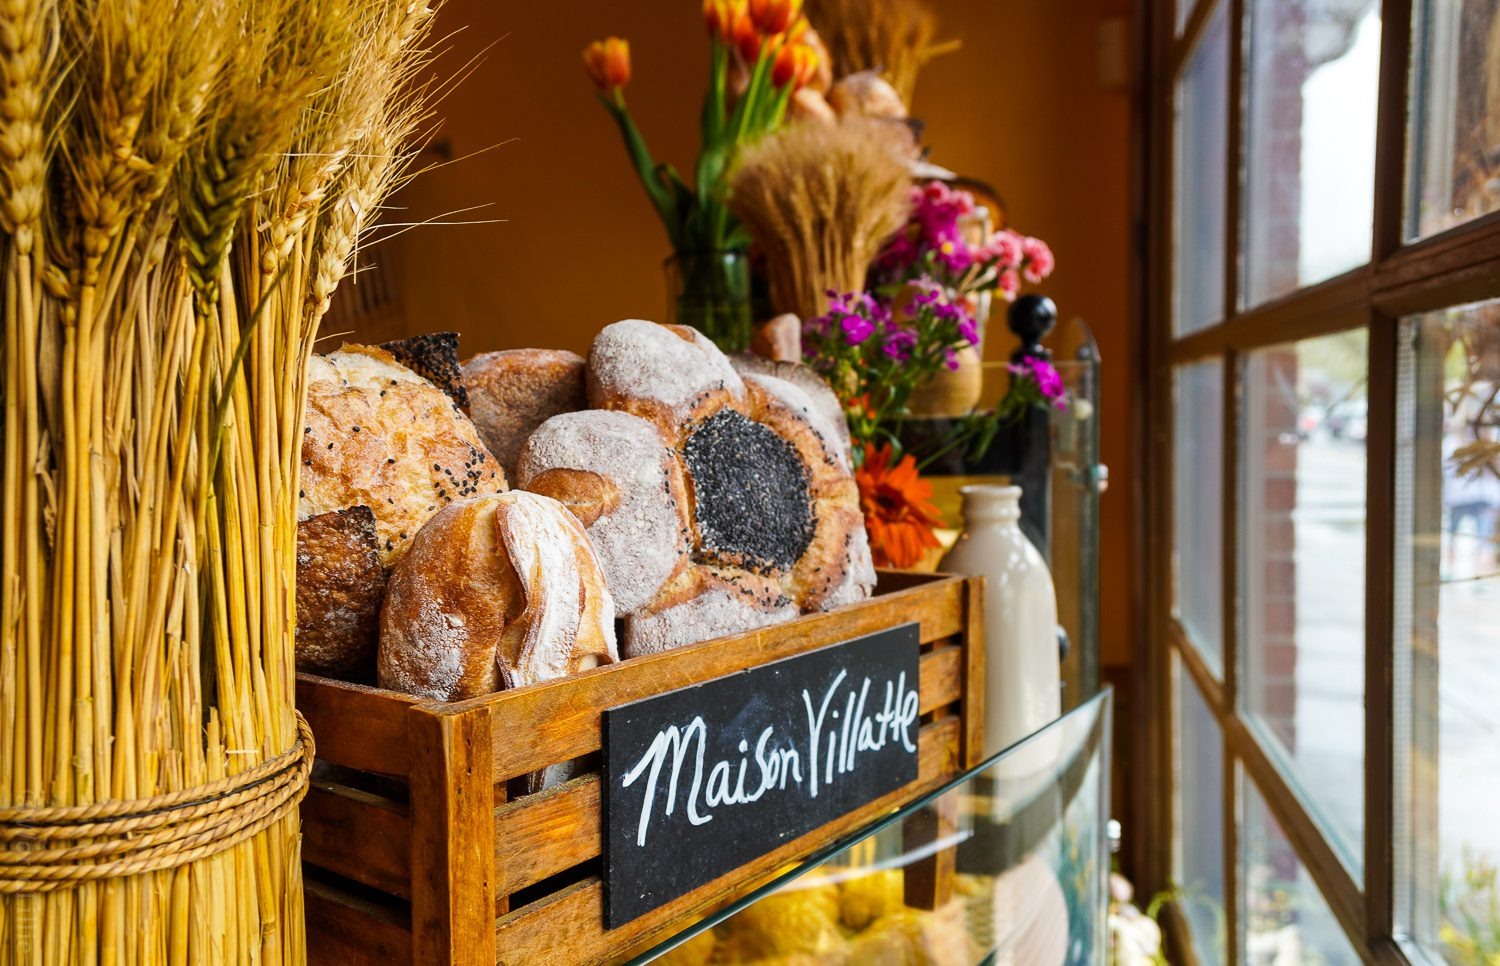 Maison Villatte French Bakery in Falmouth